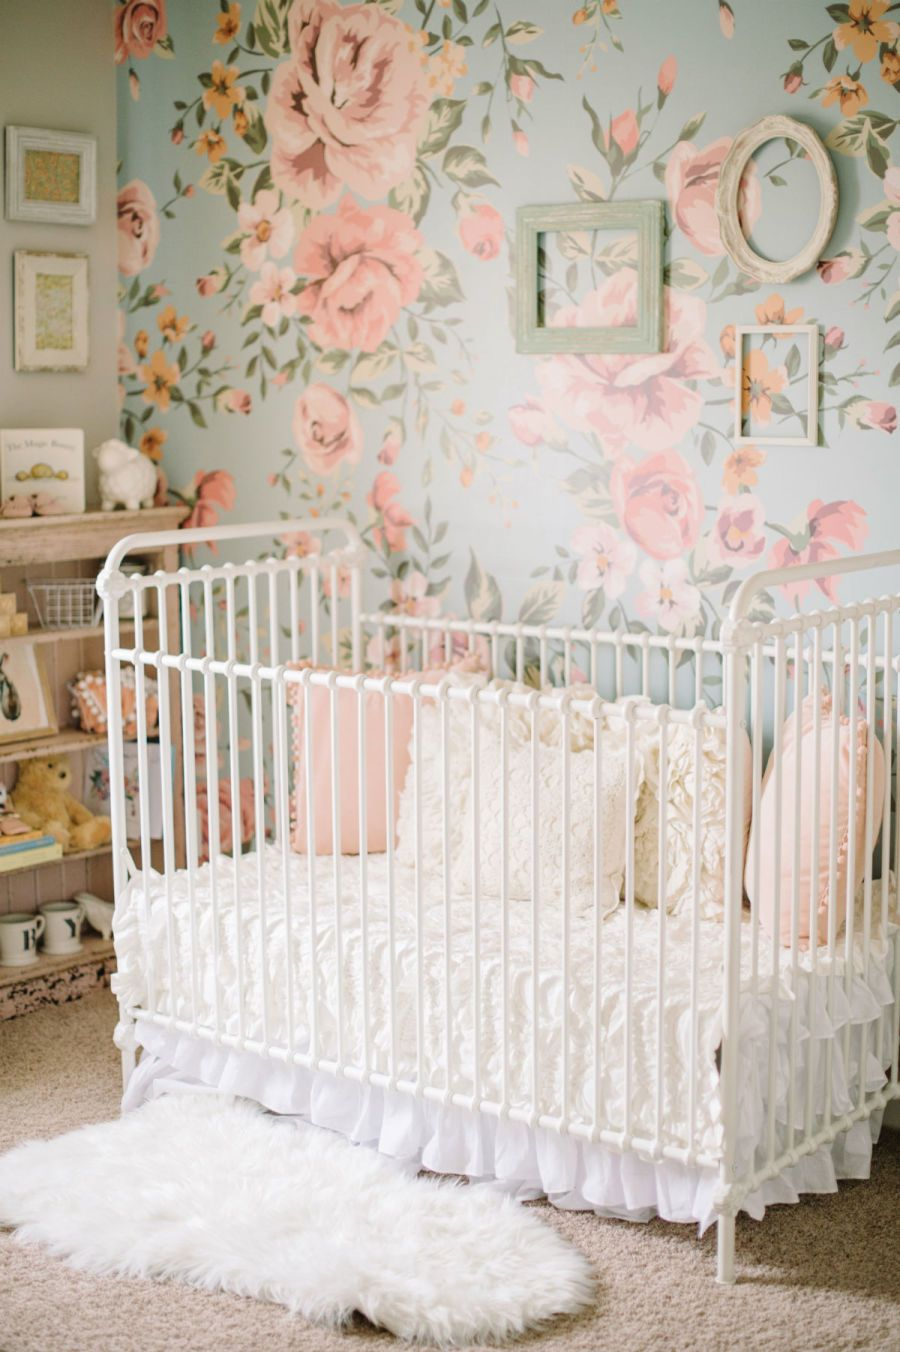 An Iron Crib Floral Wallpaper And Sweet Vintage Details In This Baby Girls Nursery Photographer Corrina Walker Photography Read More On SMP